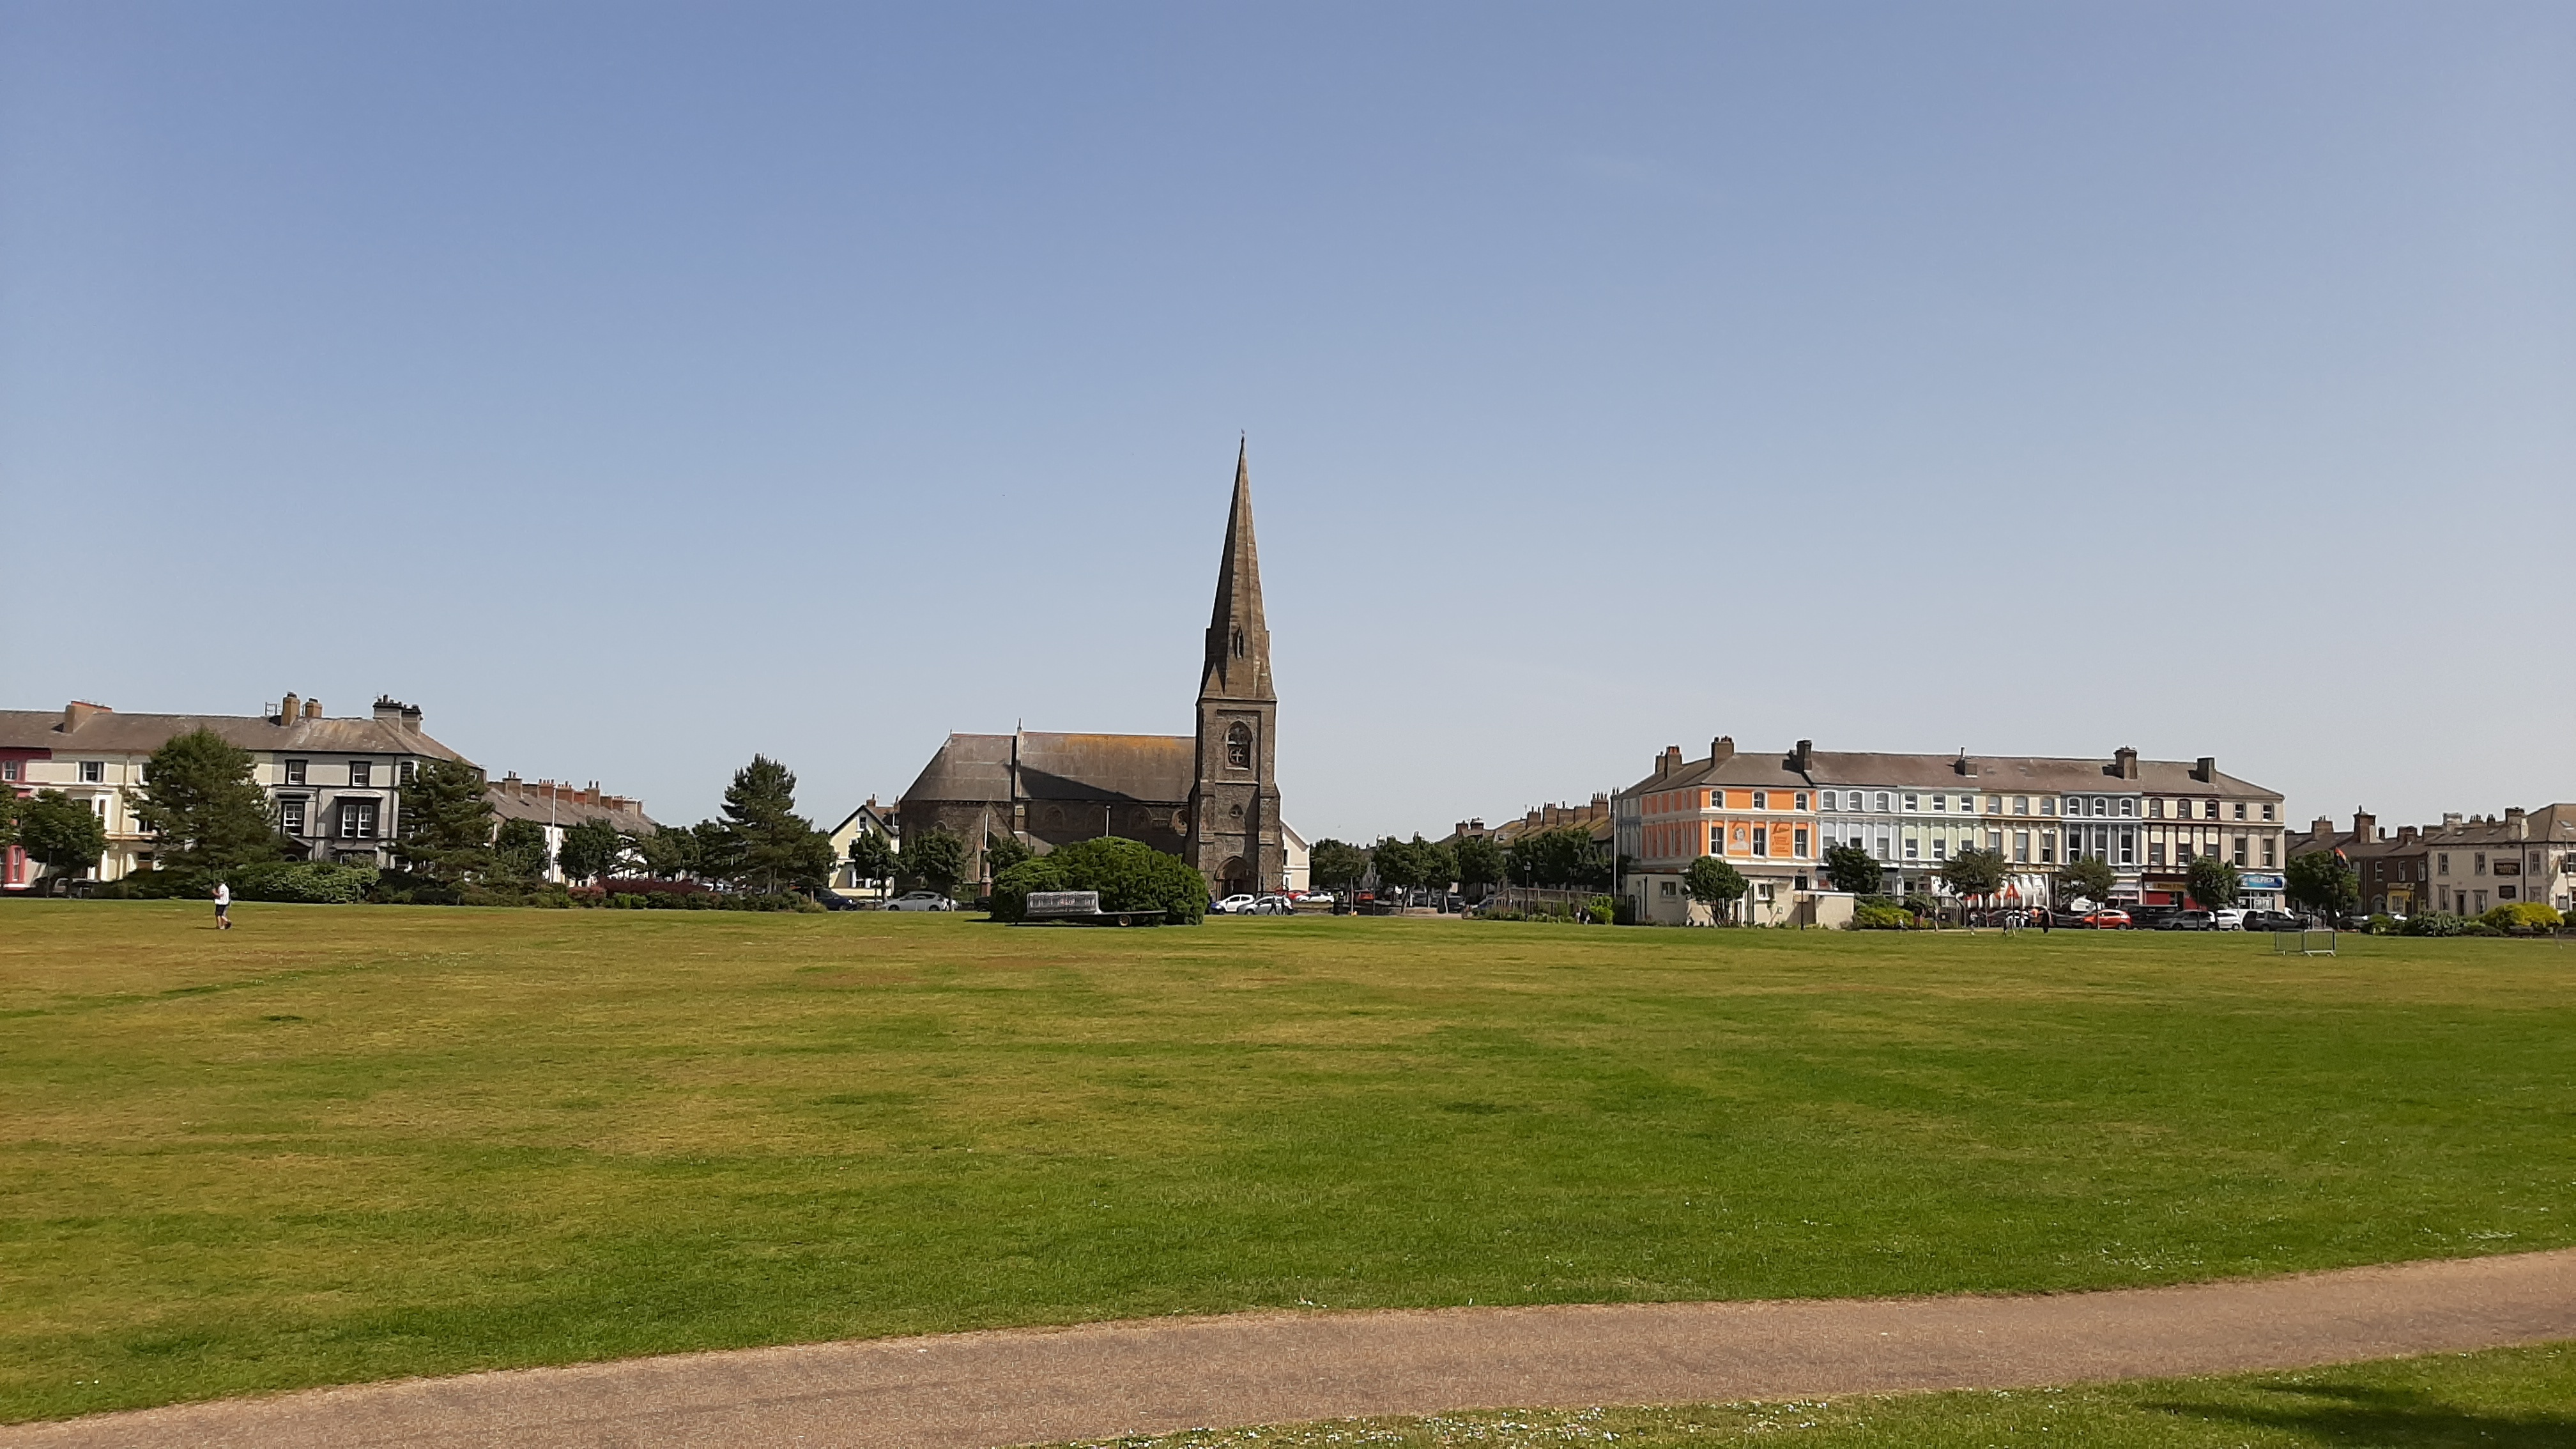 Silloth celebrates as Silloth Green wins its eighth Green Flag Award